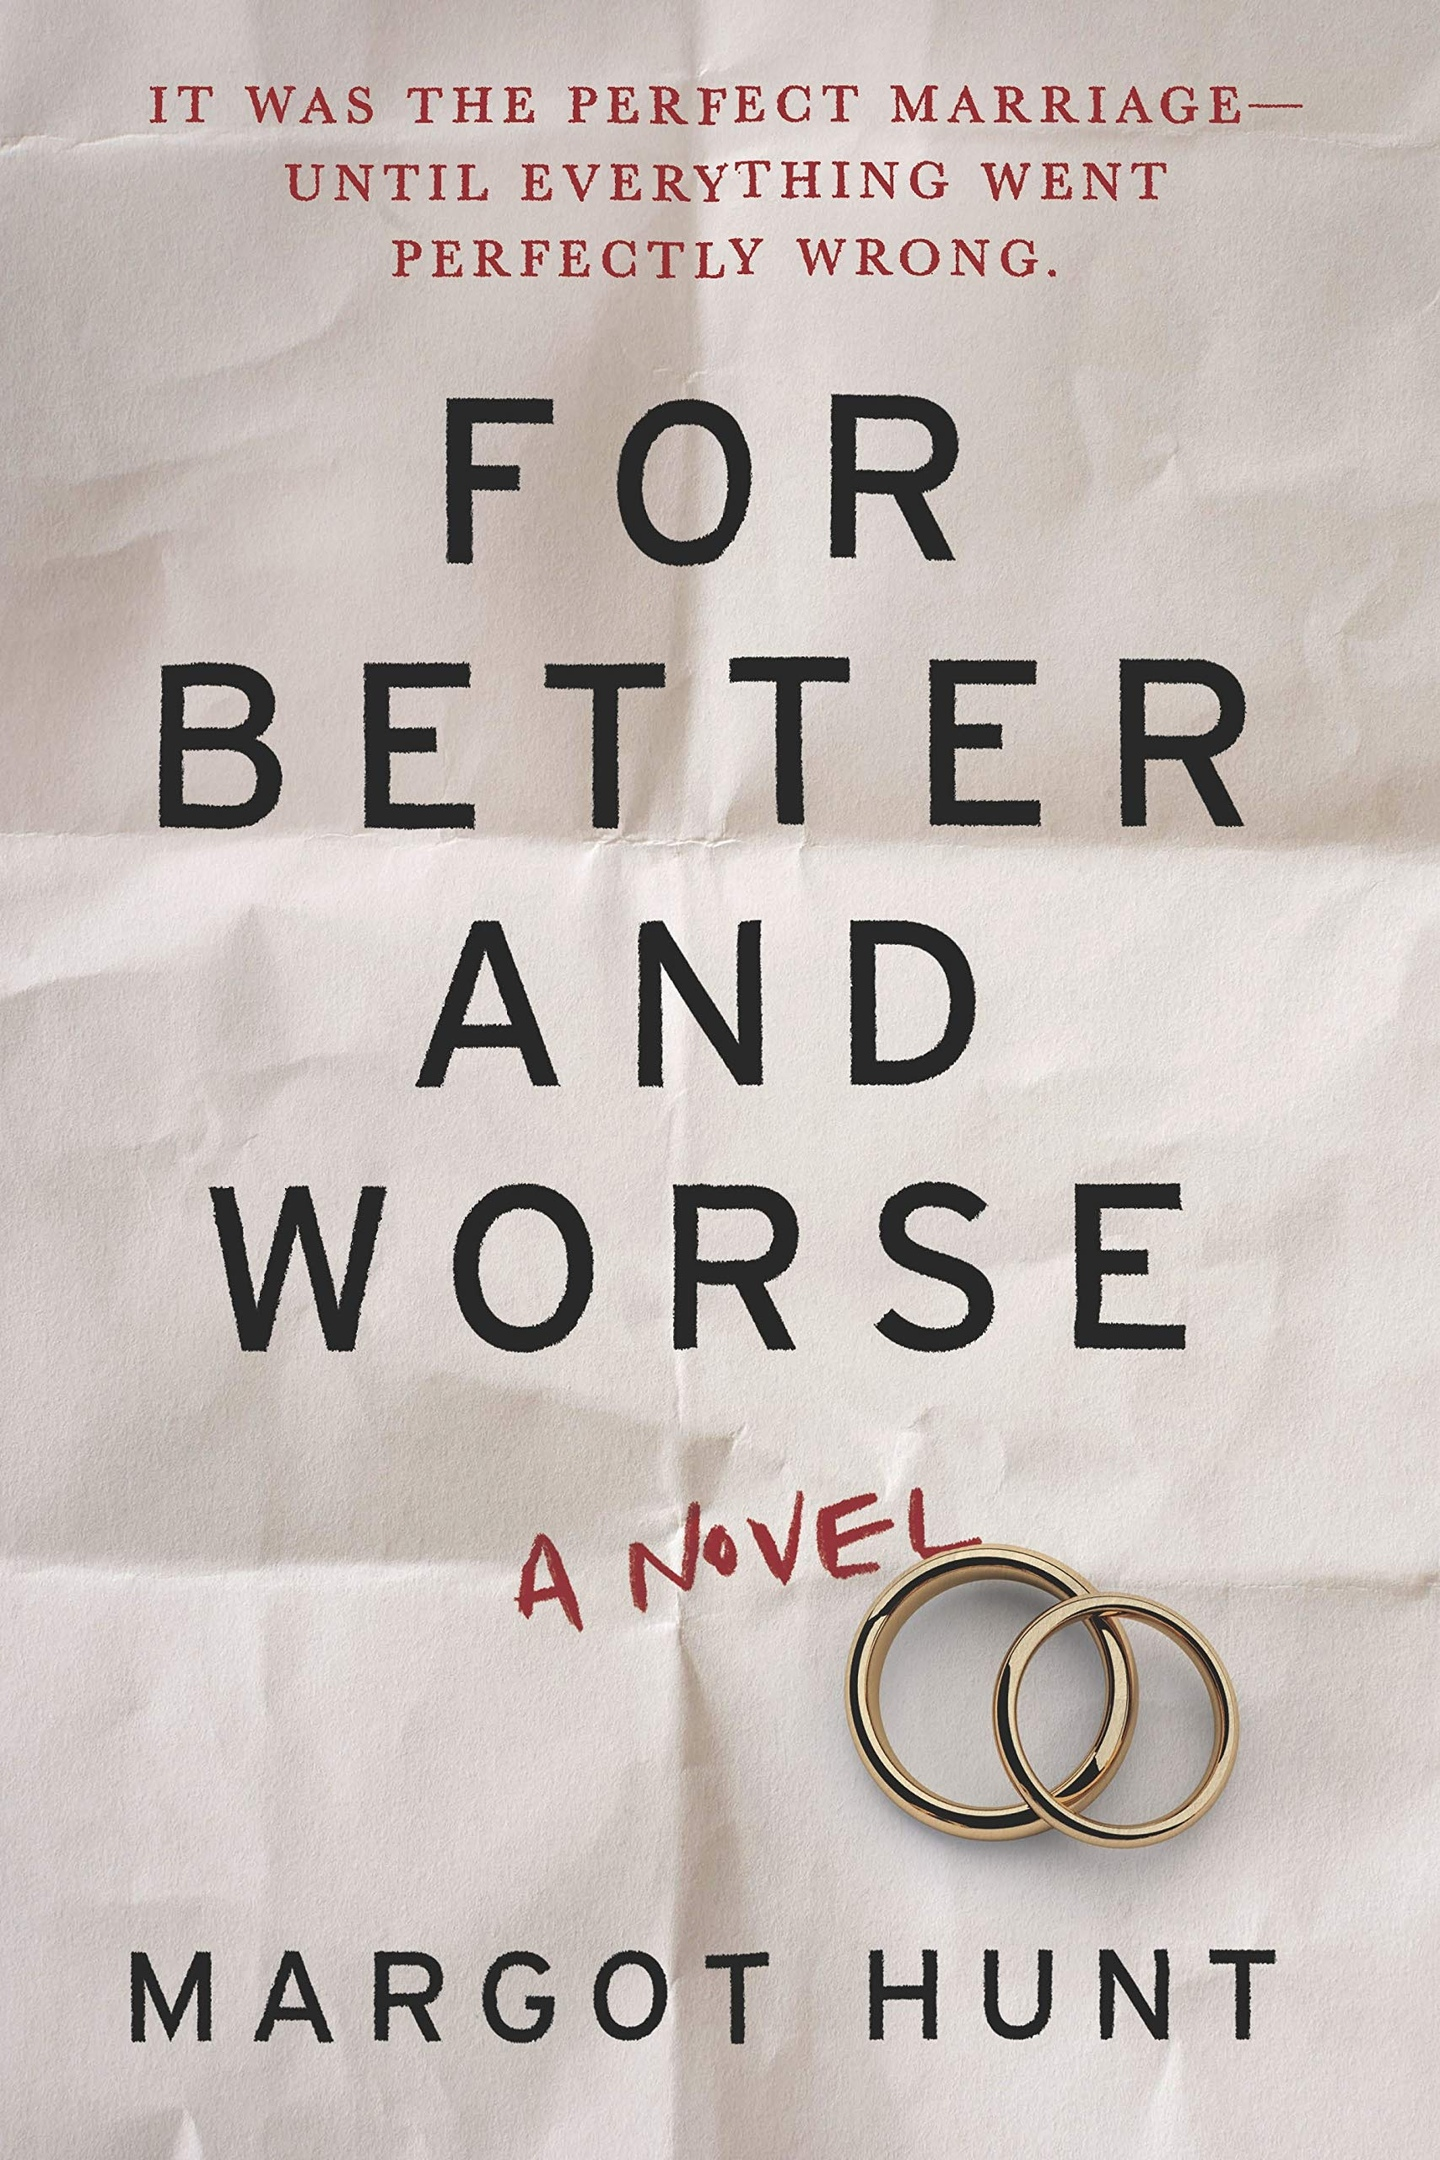 Margot Hunt – For Better And Worse